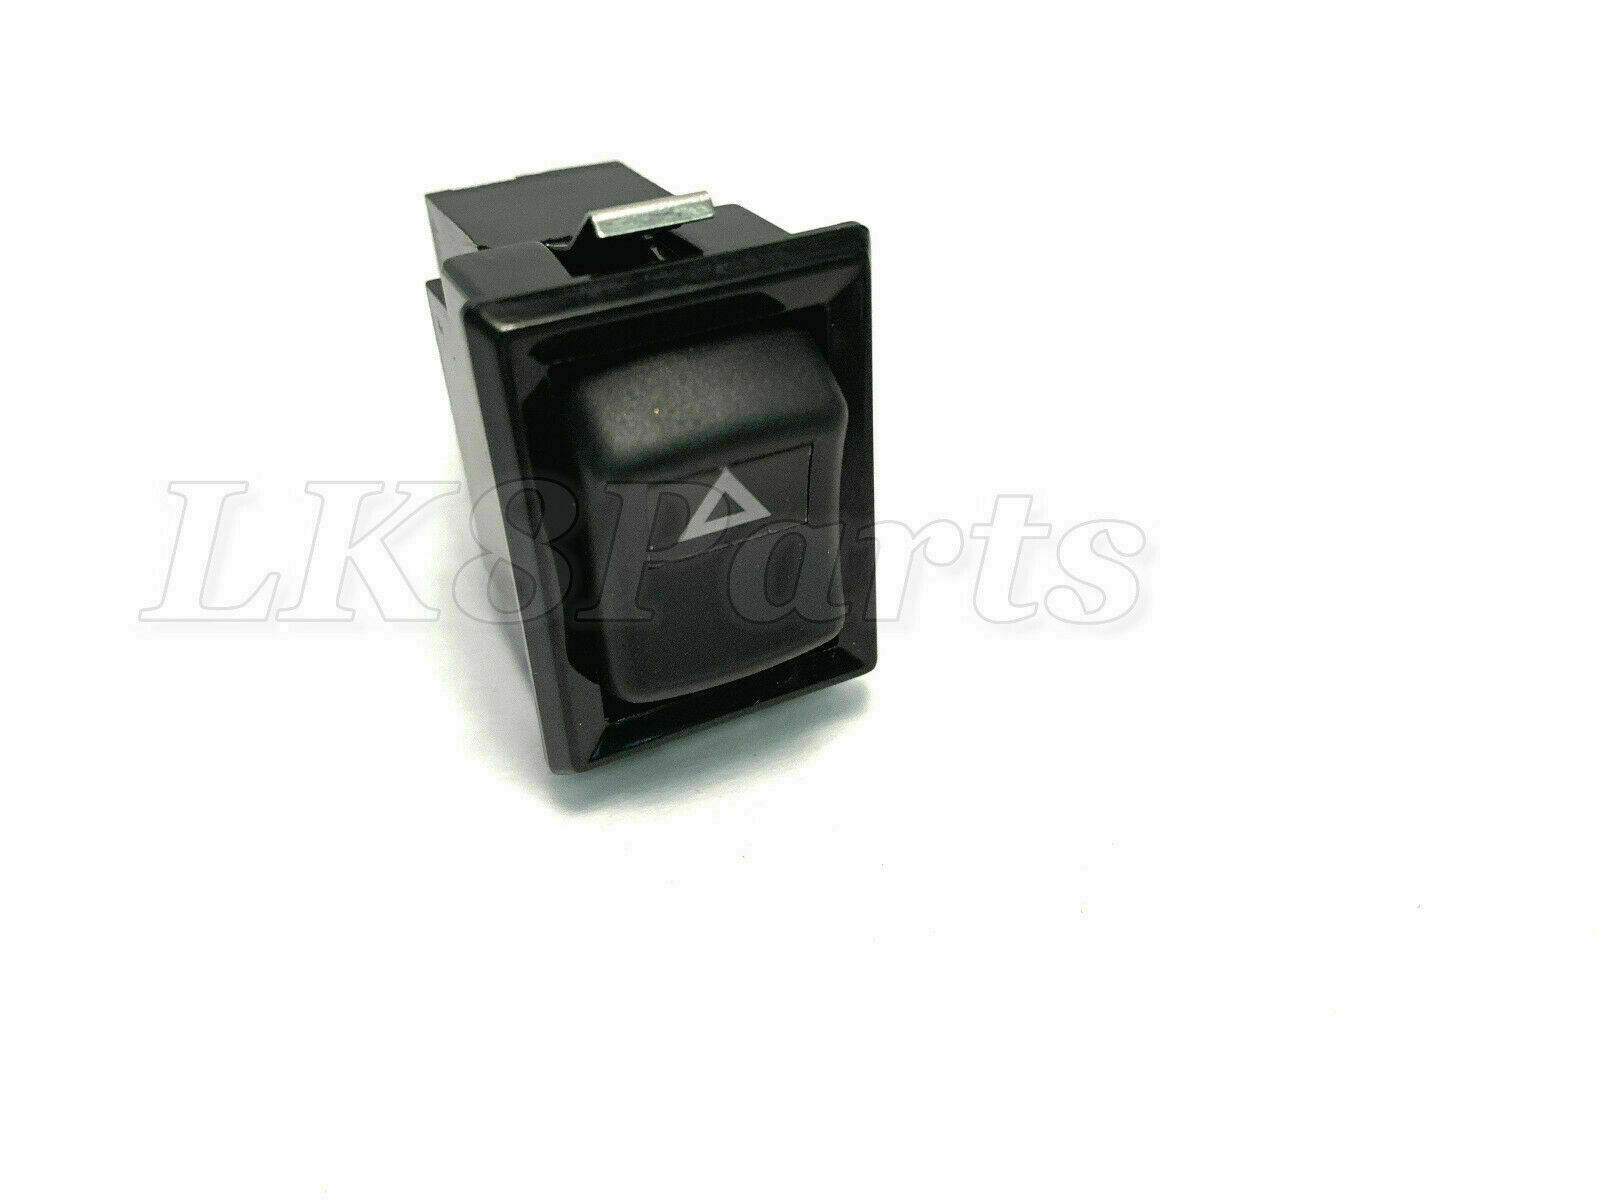 Primary image for Land Rover Defender 90 /110 Hazard Flasher Switch Part# BR1289 YUF101490 New